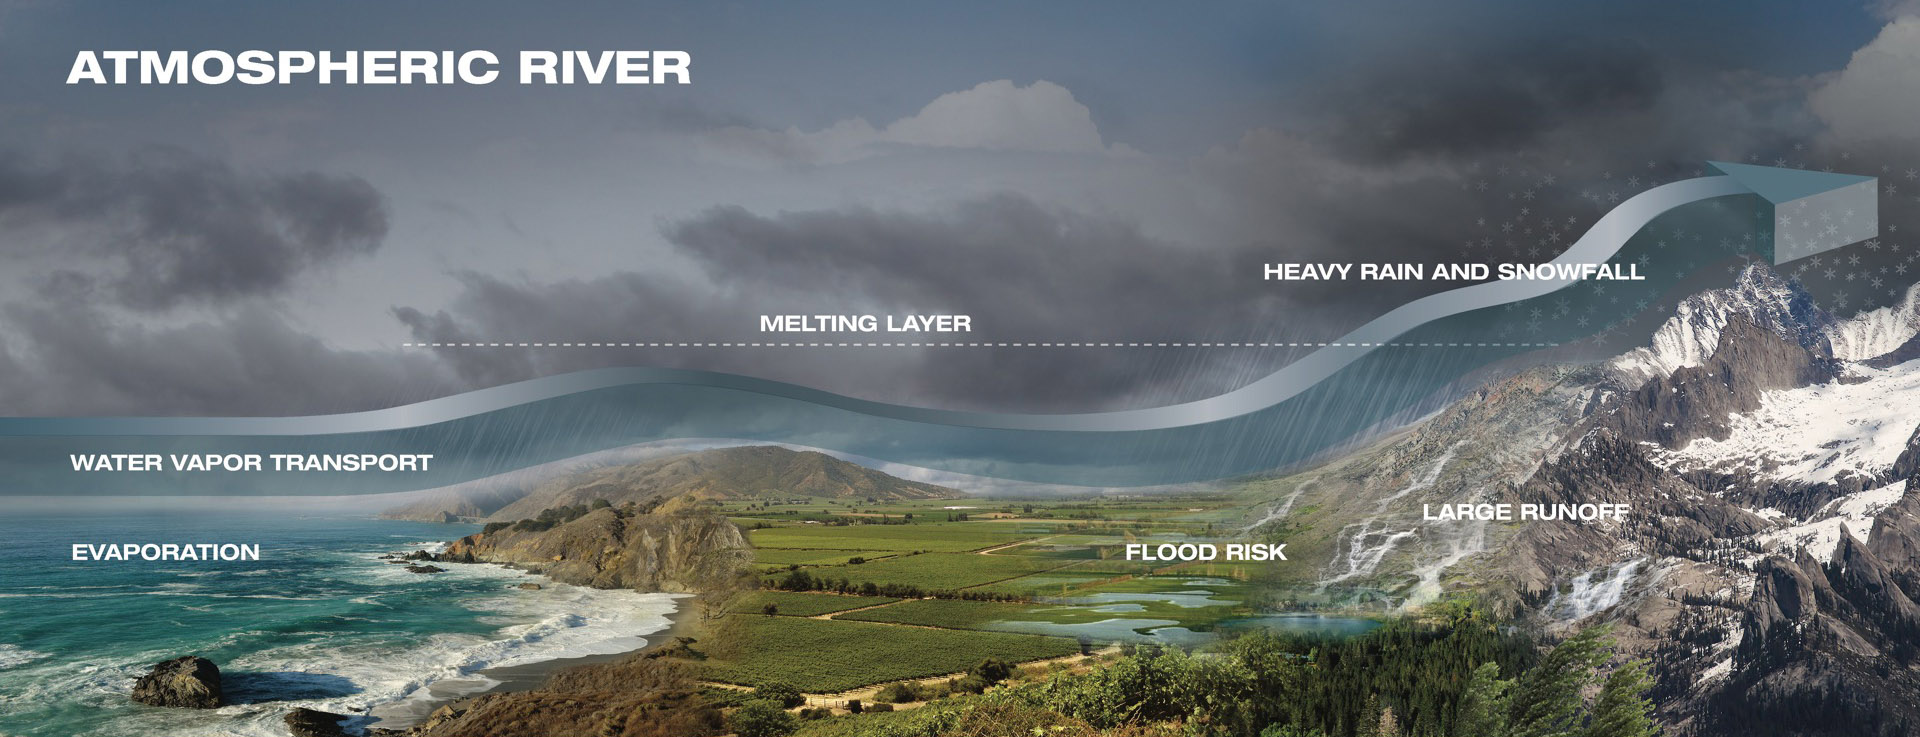 Diagram showing the path and dynamics of atmospheric rivers